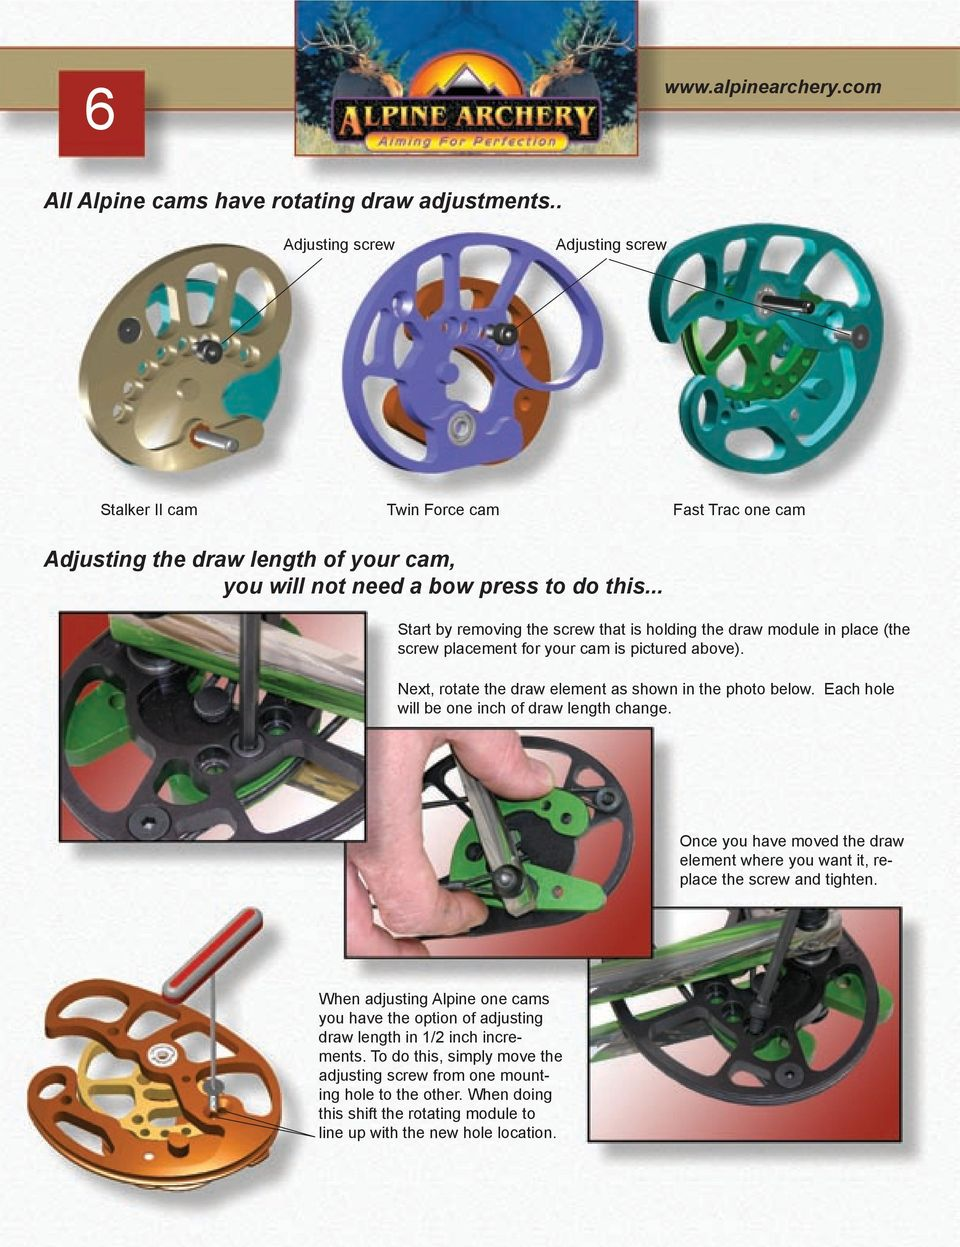 Alpine Archery Owner s Manual - PDF Free Download